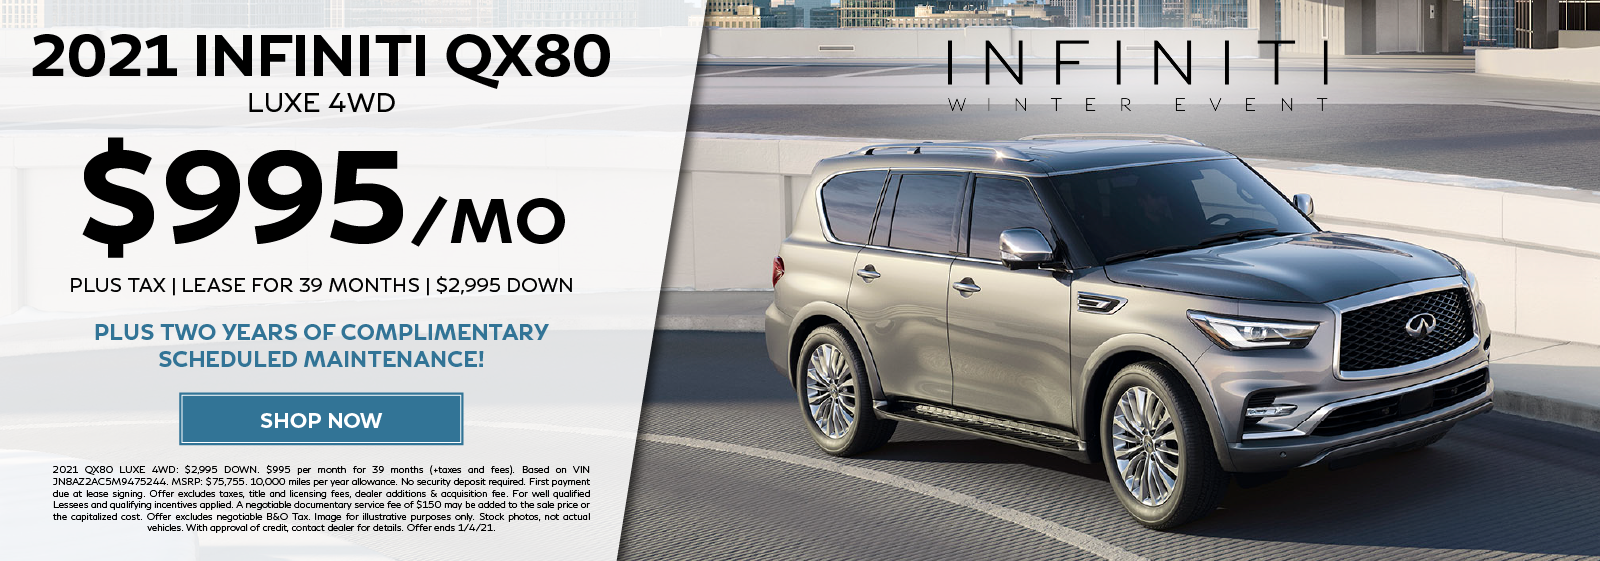 Lease a new 2021 QX80 LUXE 4WD for $995 per month for 39 months plus get two years of complimentary scheduled maintenance. Click to shop now.